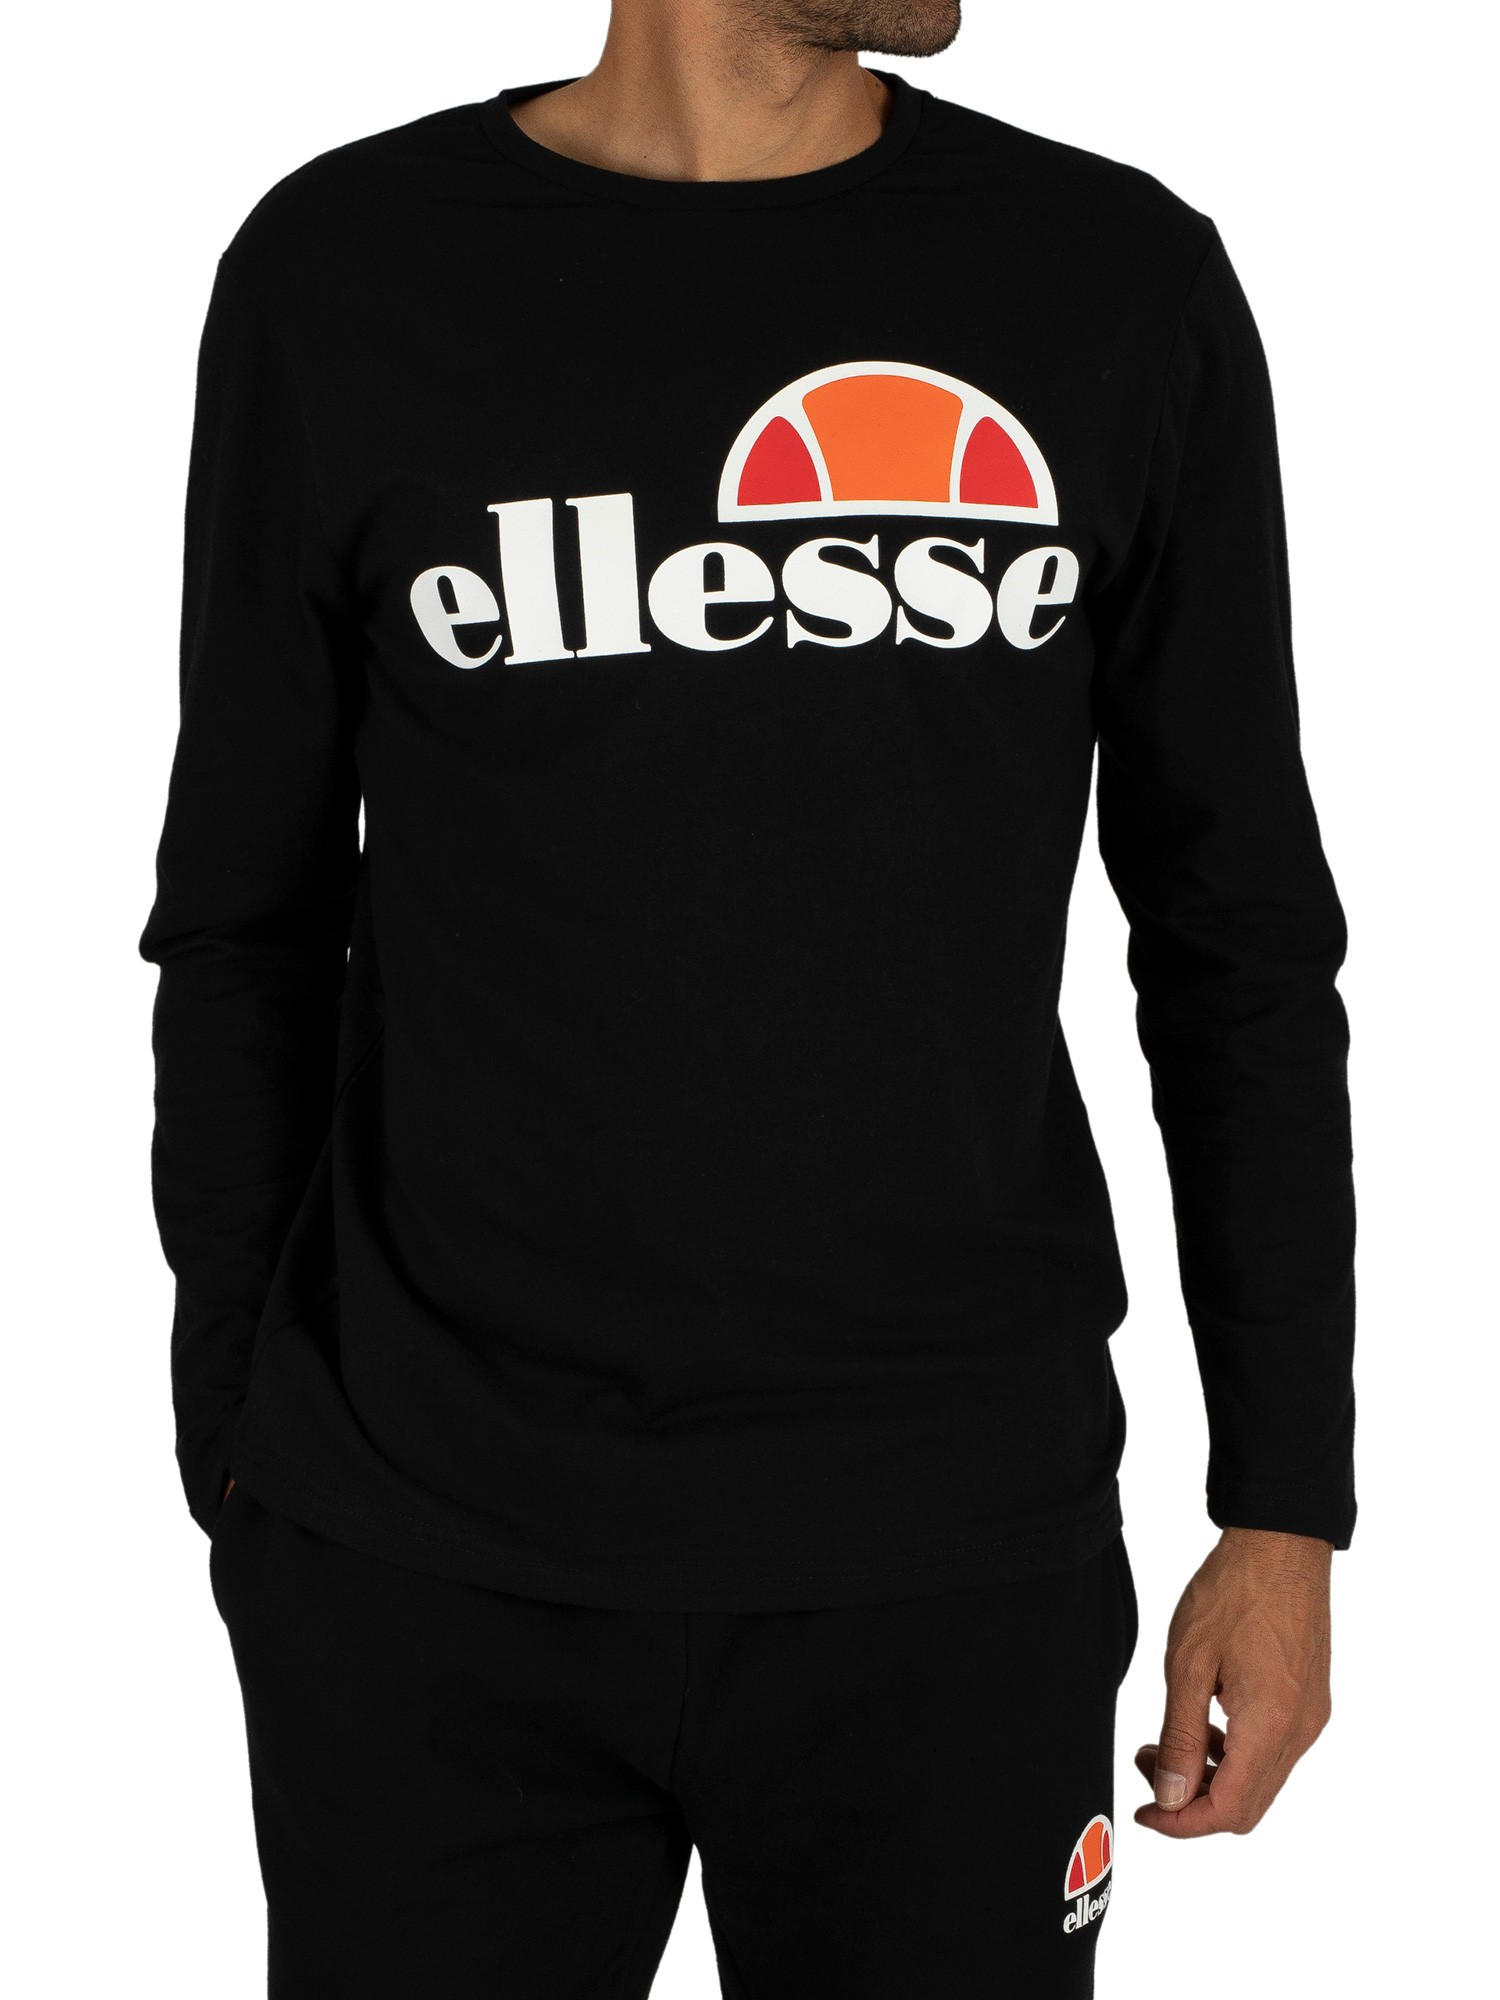 Ellesse Clothing Mens Jackets T Shirts Hoodies Amp Shirts